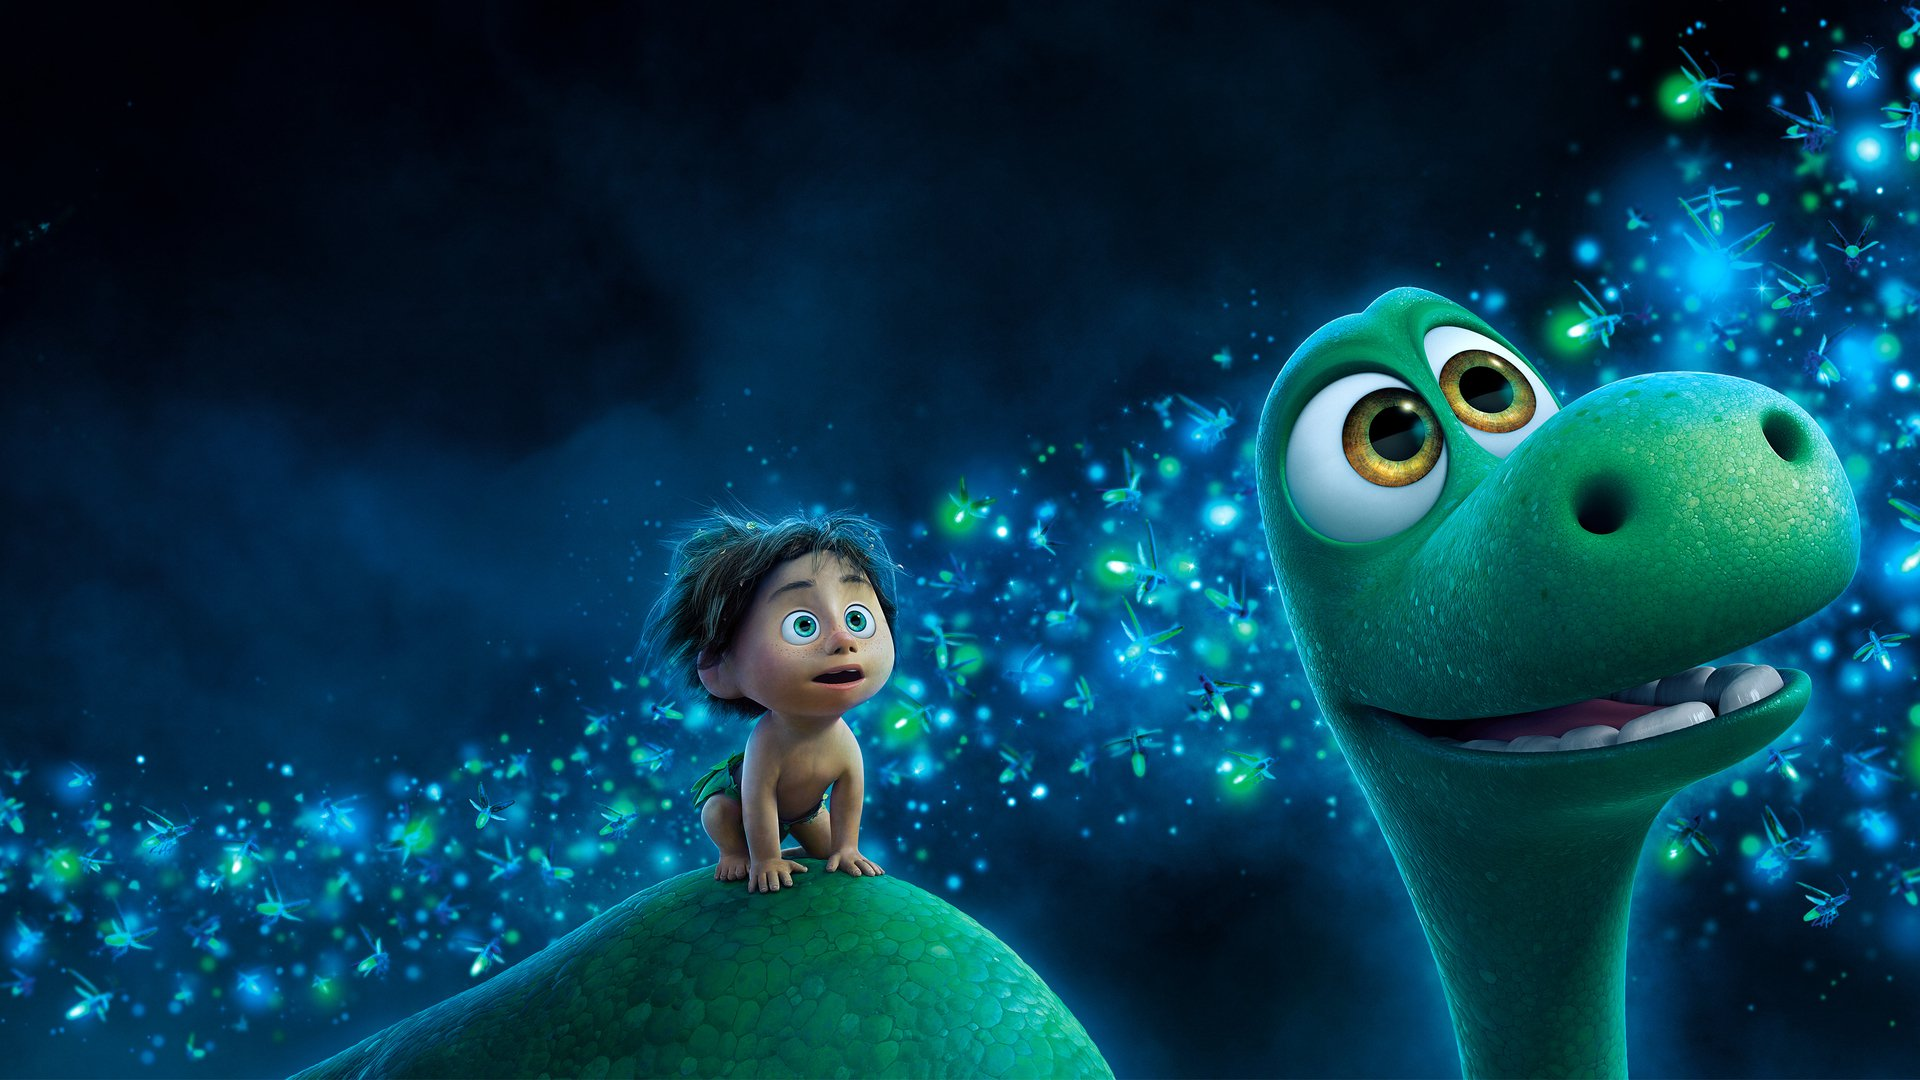 15 The Good Dinosaur HD Wallpapers Backgrounds 1920x1080